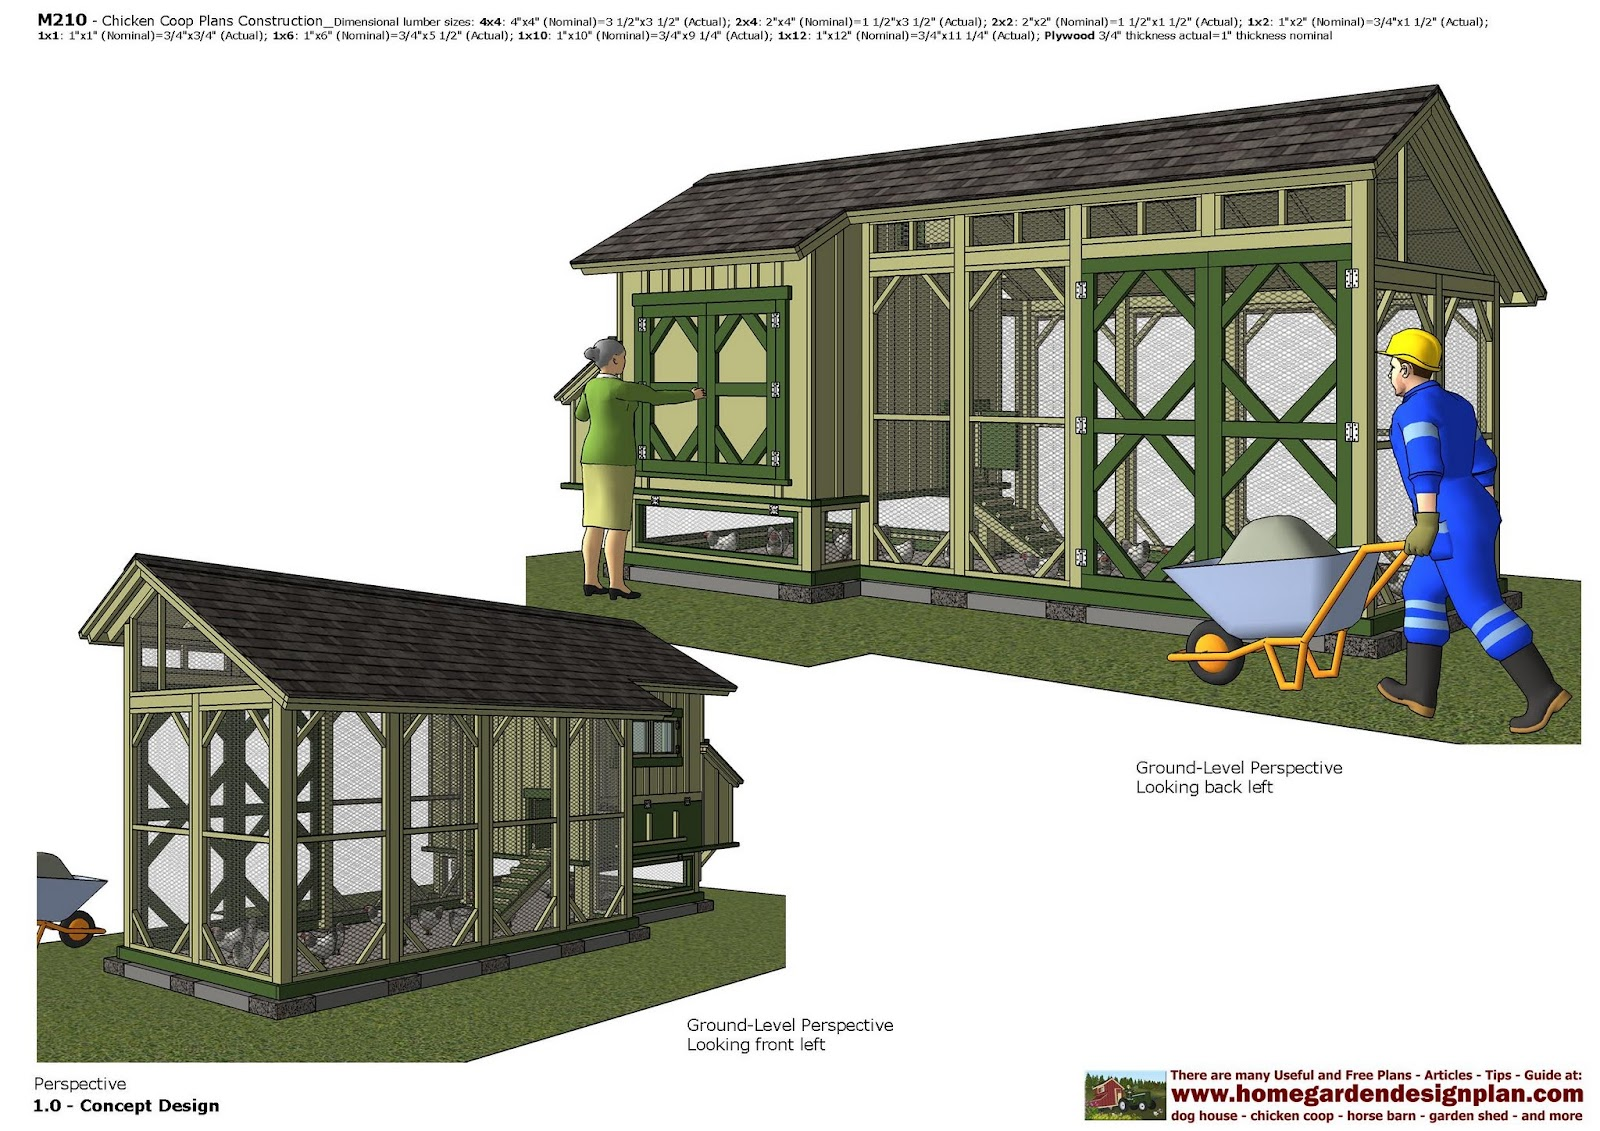 Mina m210 chicken coop plans construction how to build a for Chicken run plans